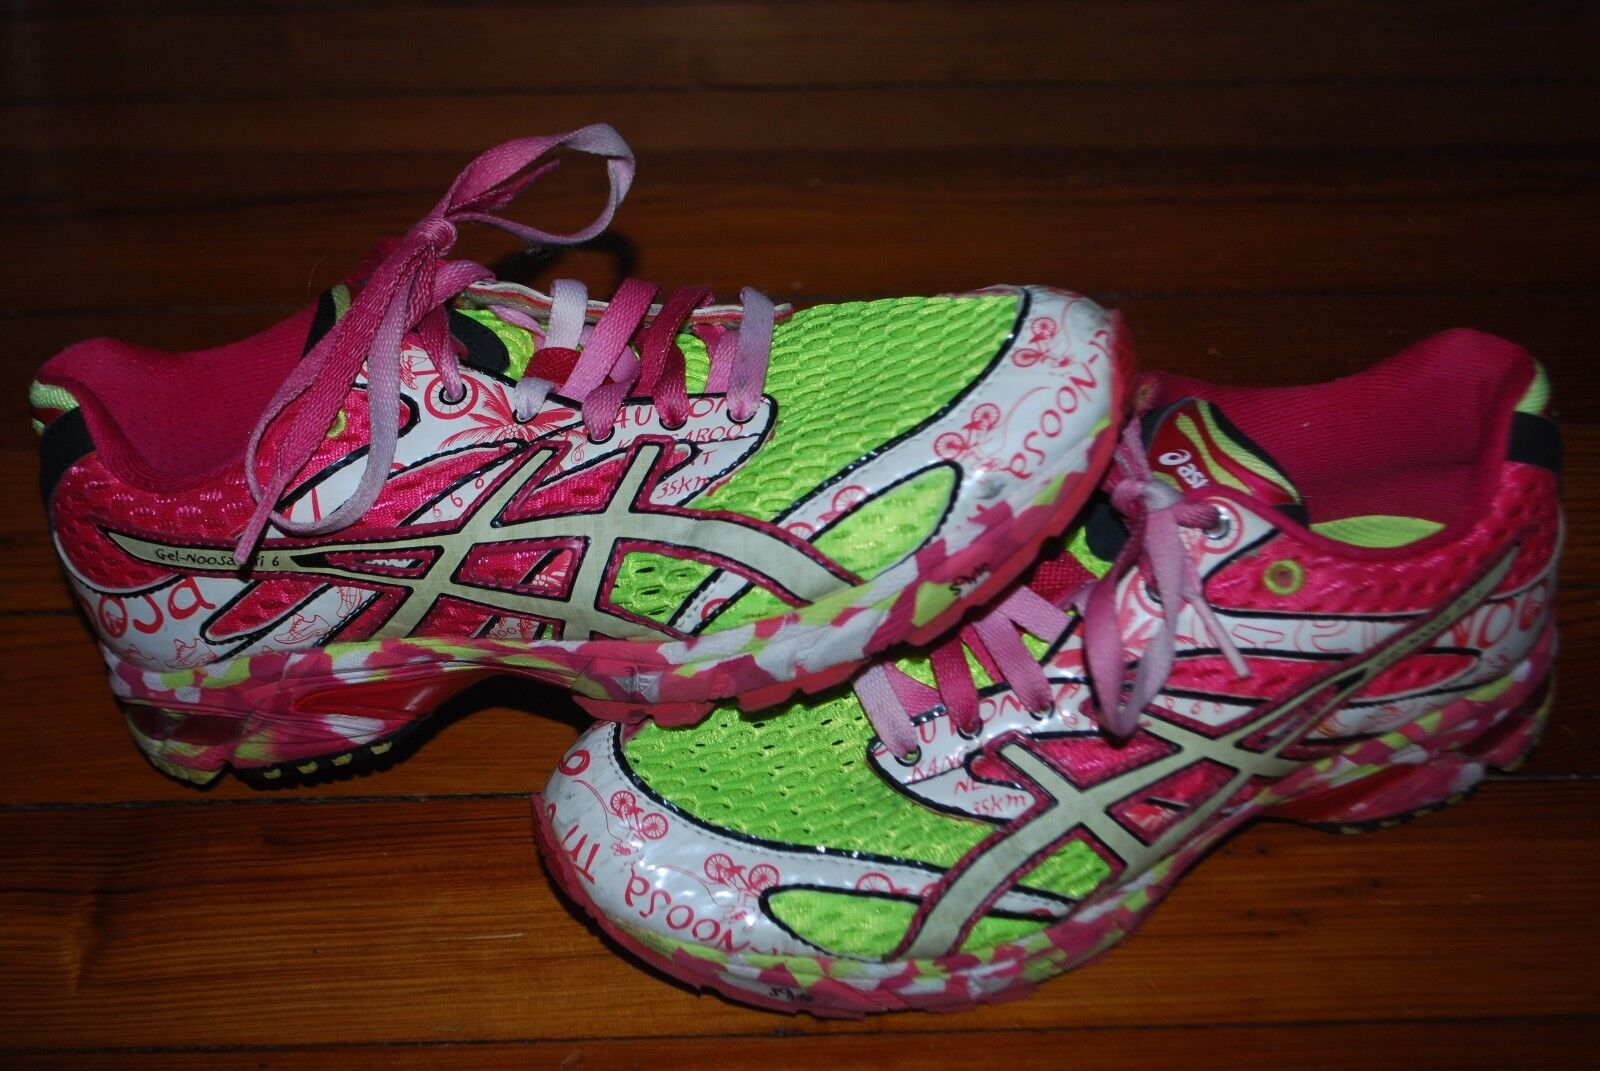 Women's Asics Gel Tri Noosa 6 Pink / Lime Green Running Sneaker (7.5)